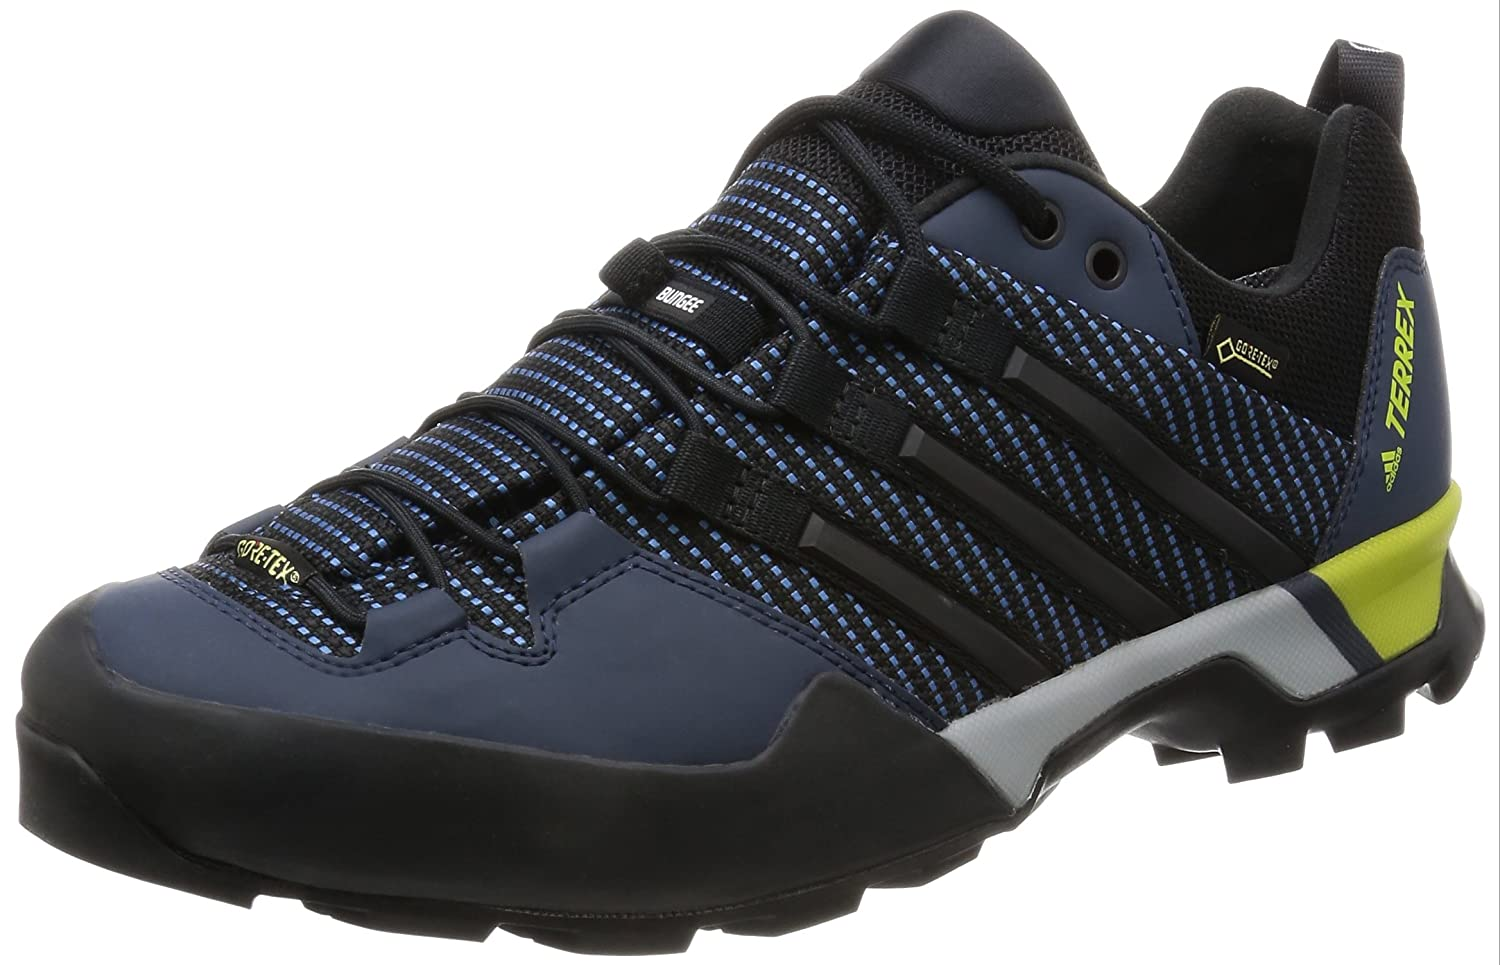 adidas ® Terrex Scope GTX Zapatillas de aproximación